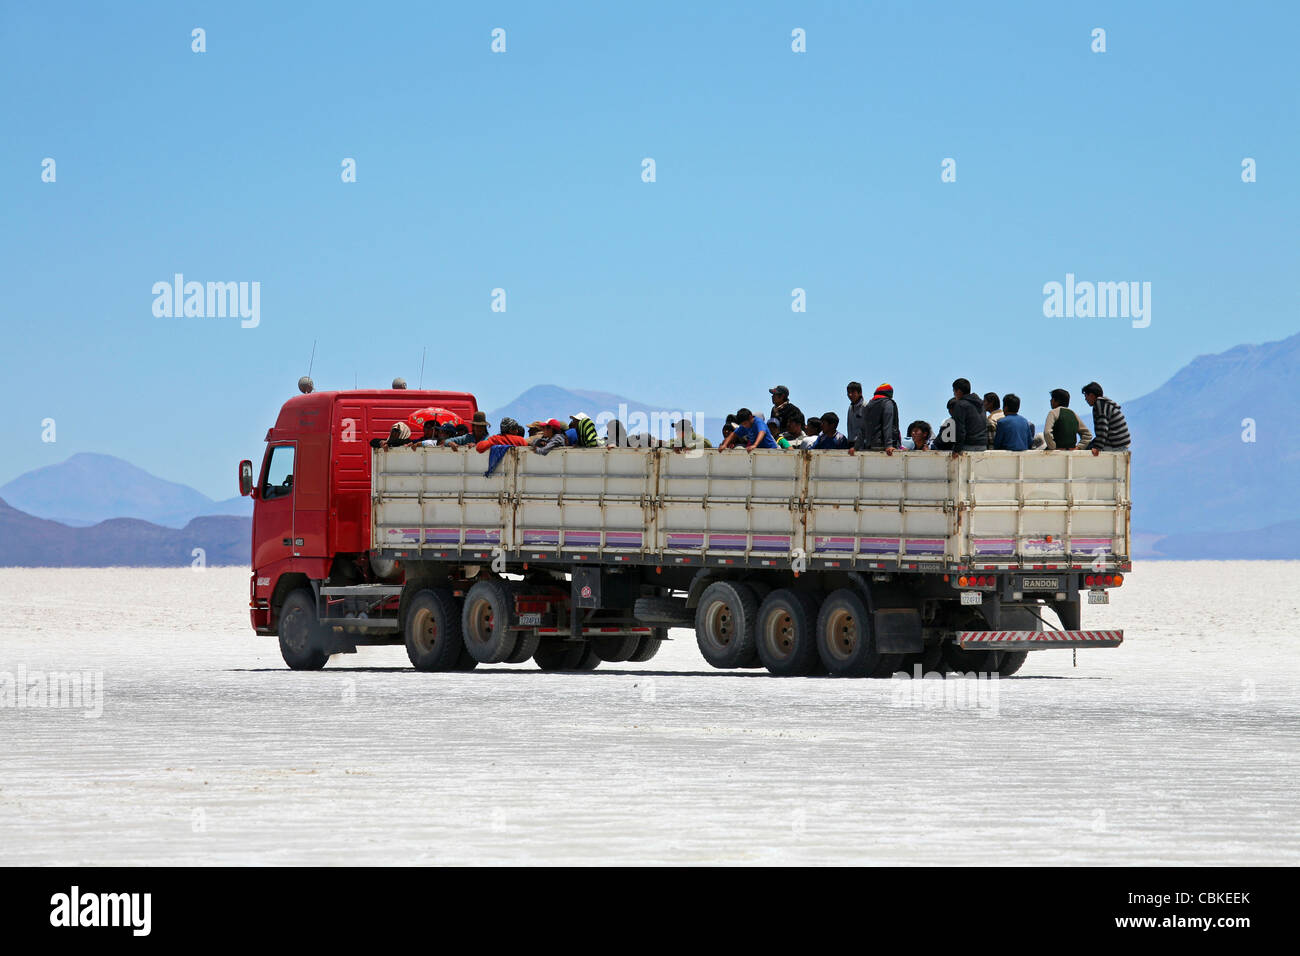 Truck with school children on the salt flat Salar de Uyuni, Altiplano, Bolivia - Stock Image